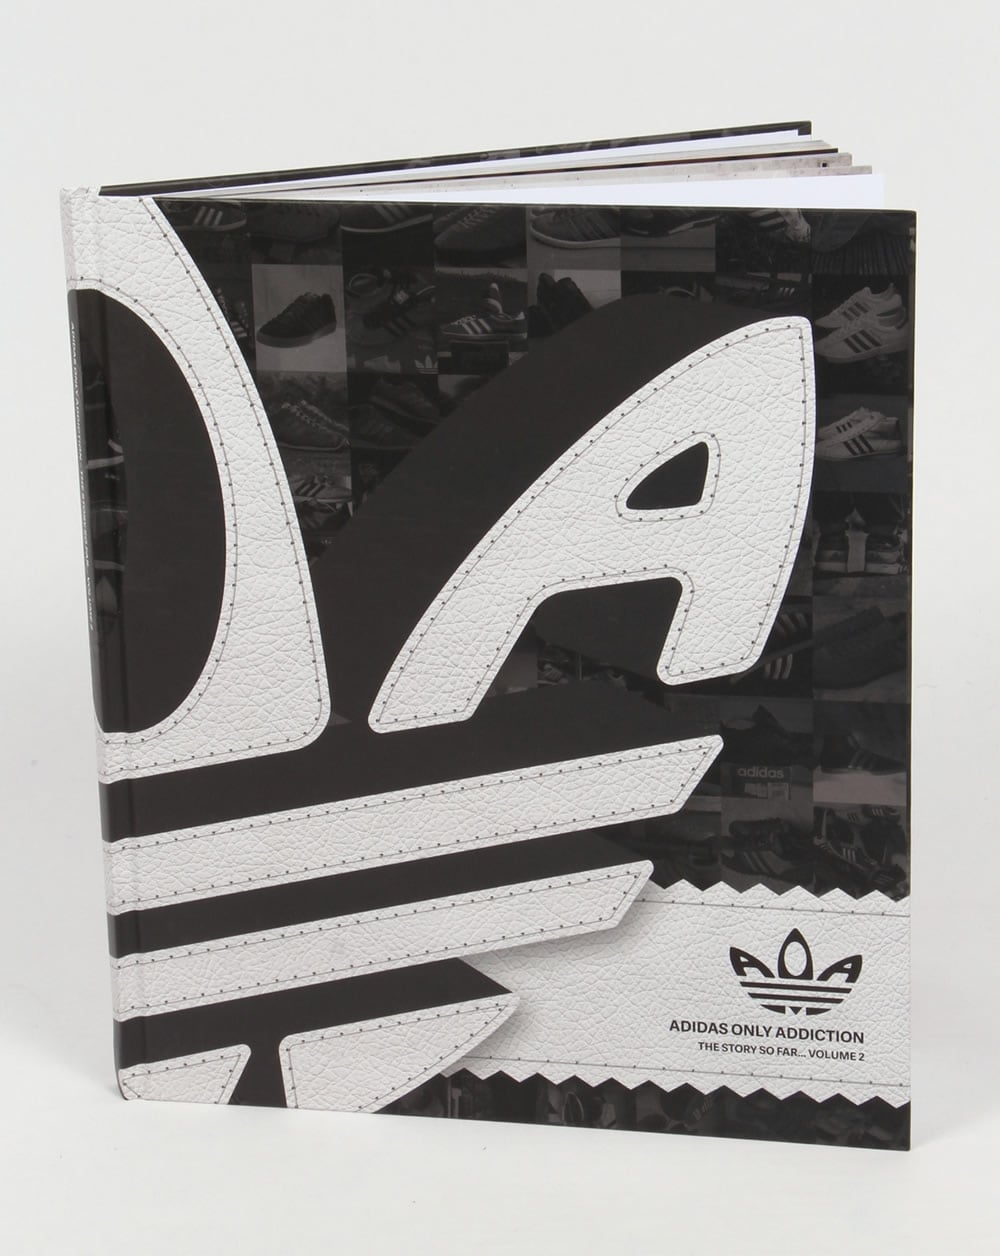 adidas Only addiction book vol 2